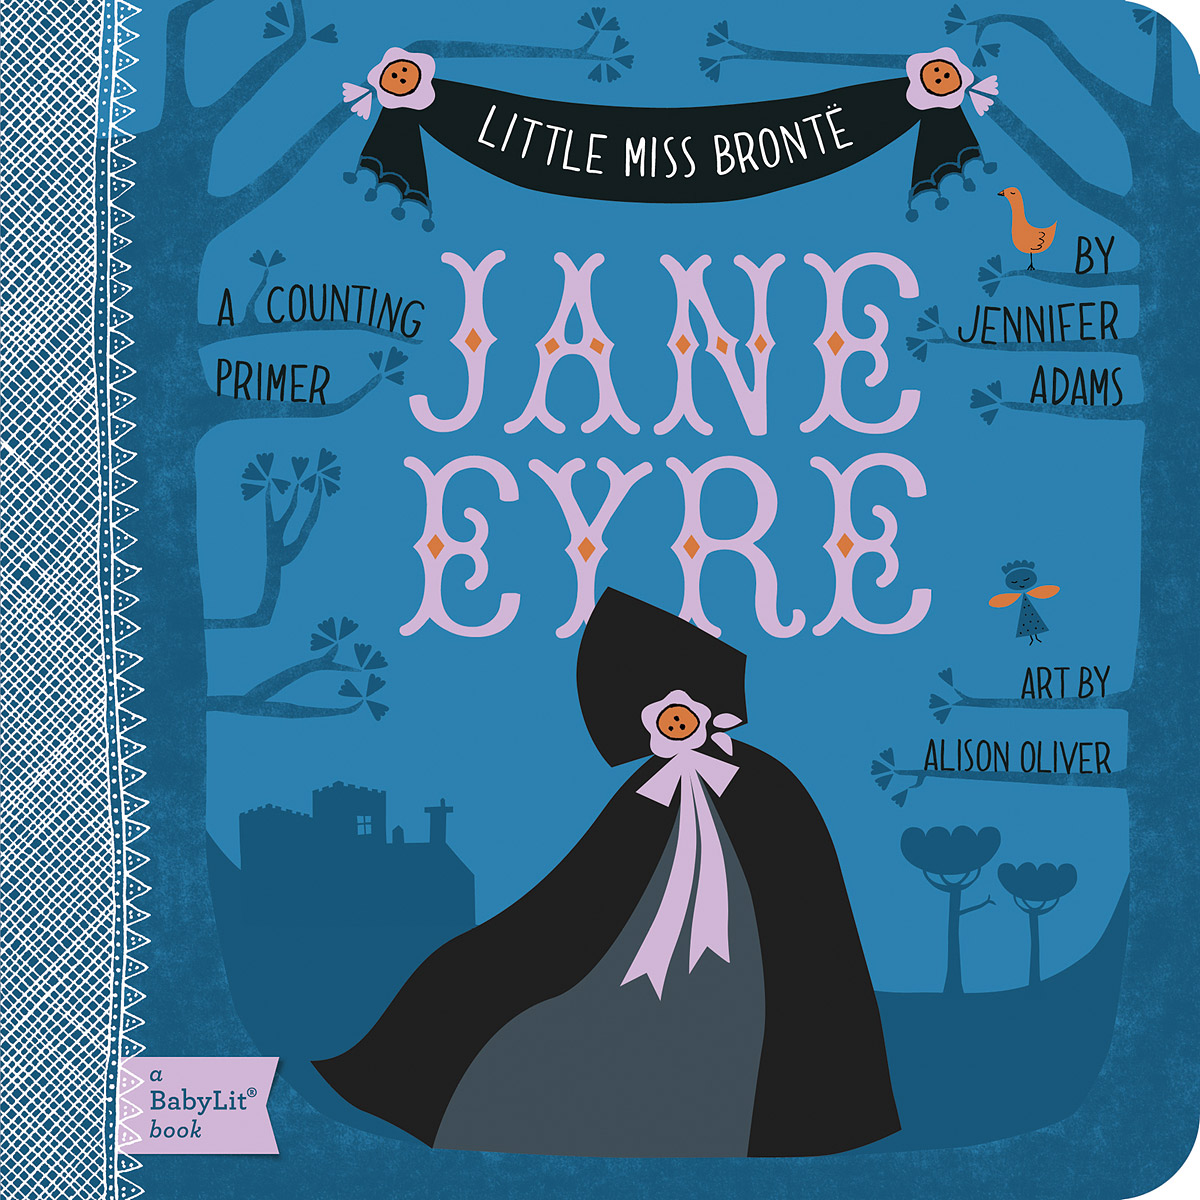 Little Miss Bronte: Jane Eyre charlotte bronte